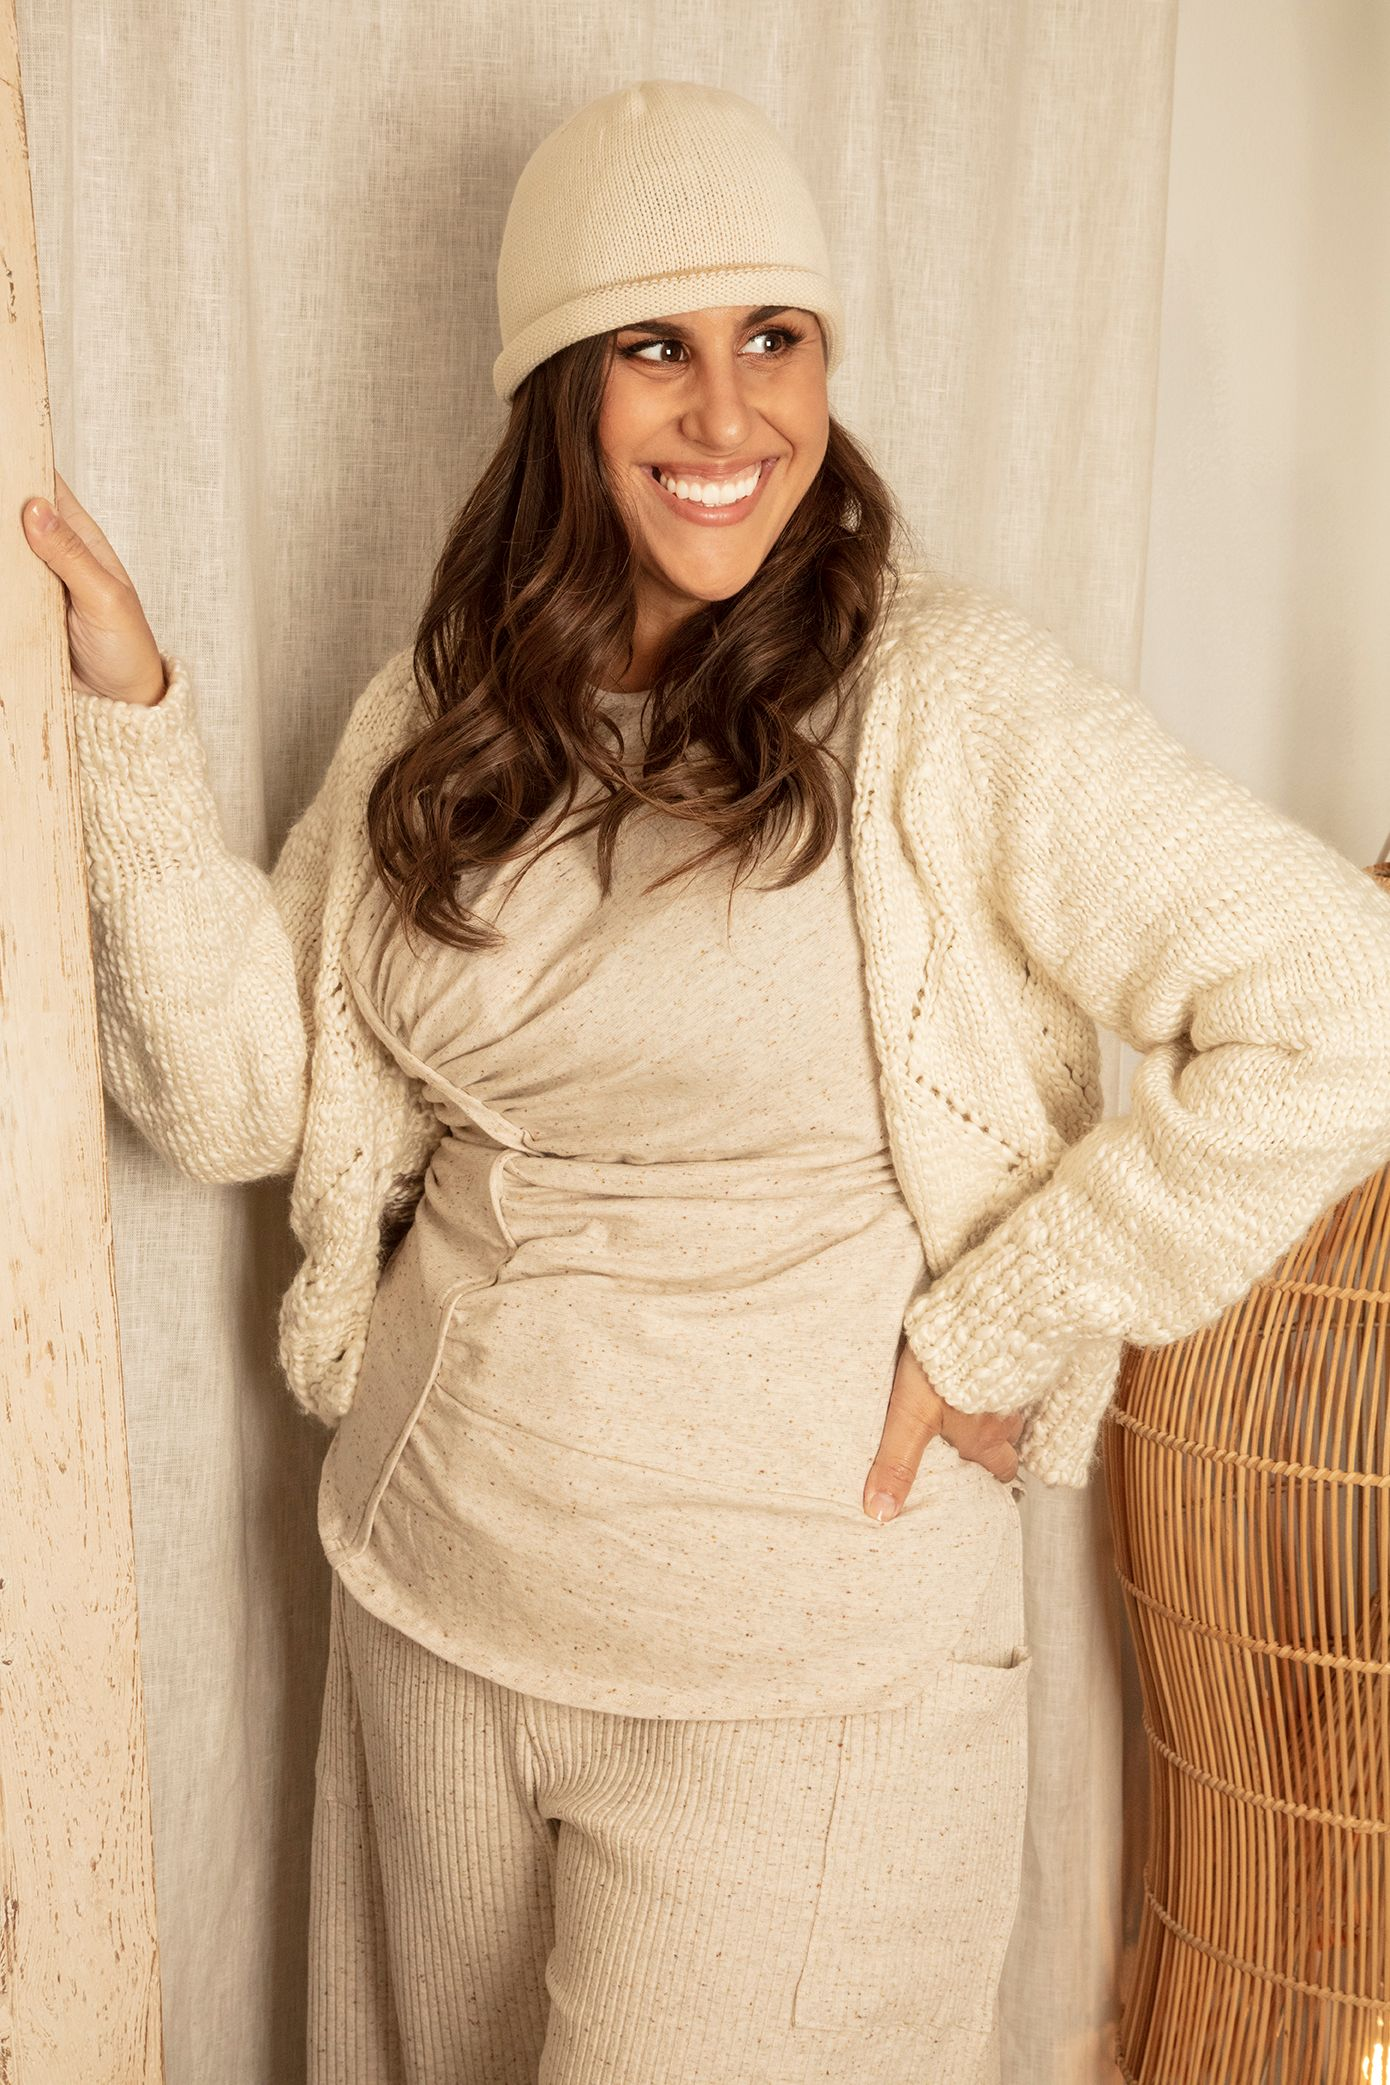 Harebell Boutique: Where Sustainability Is The Height Of Fashion